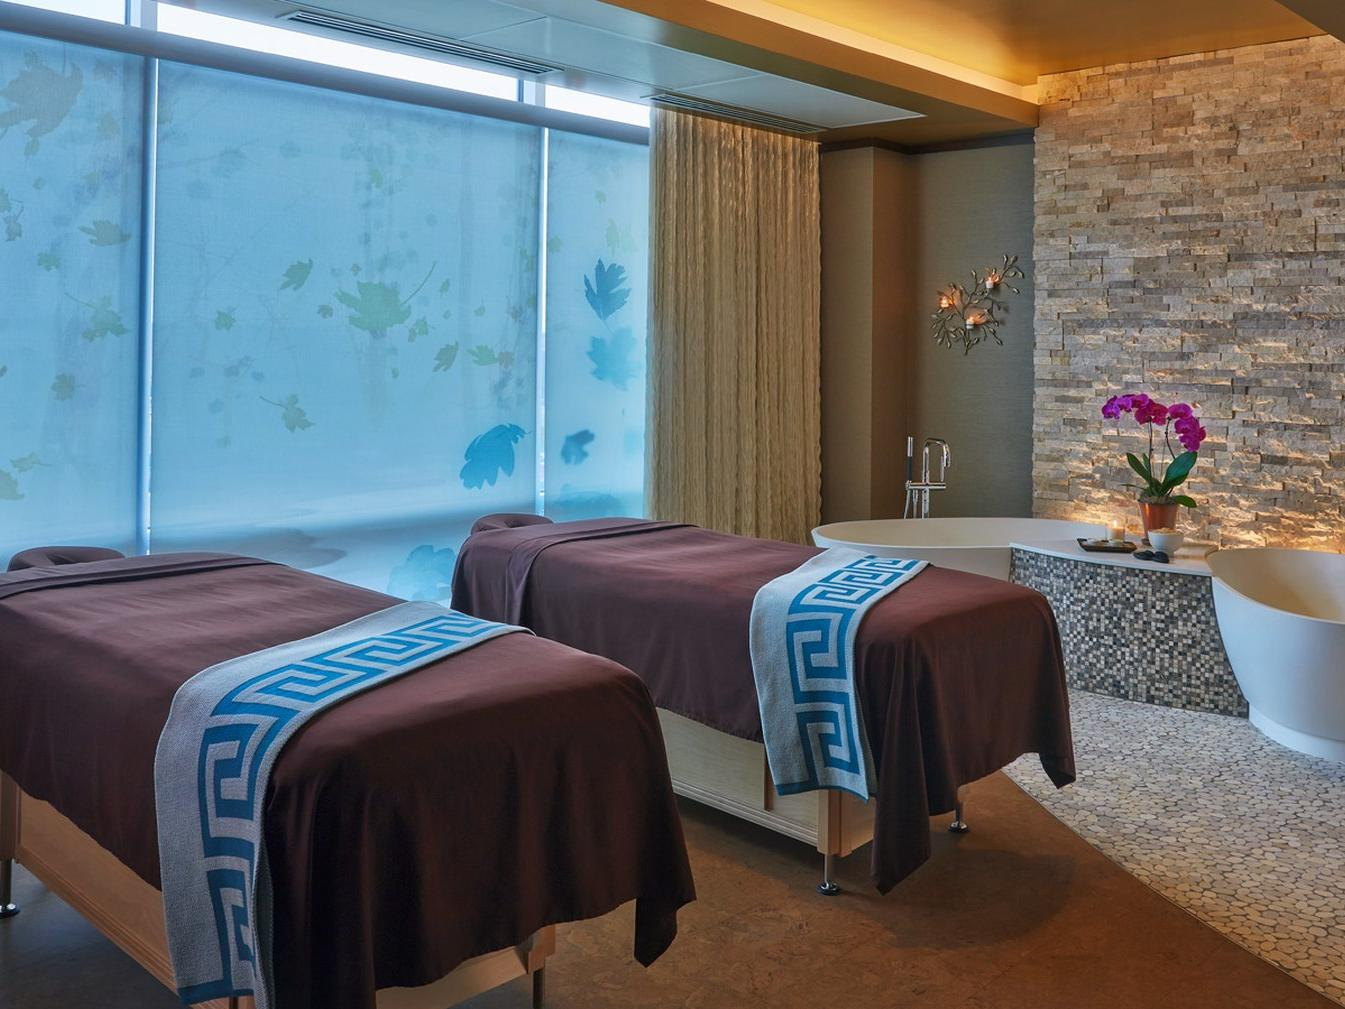 Massage tables and bath tubs